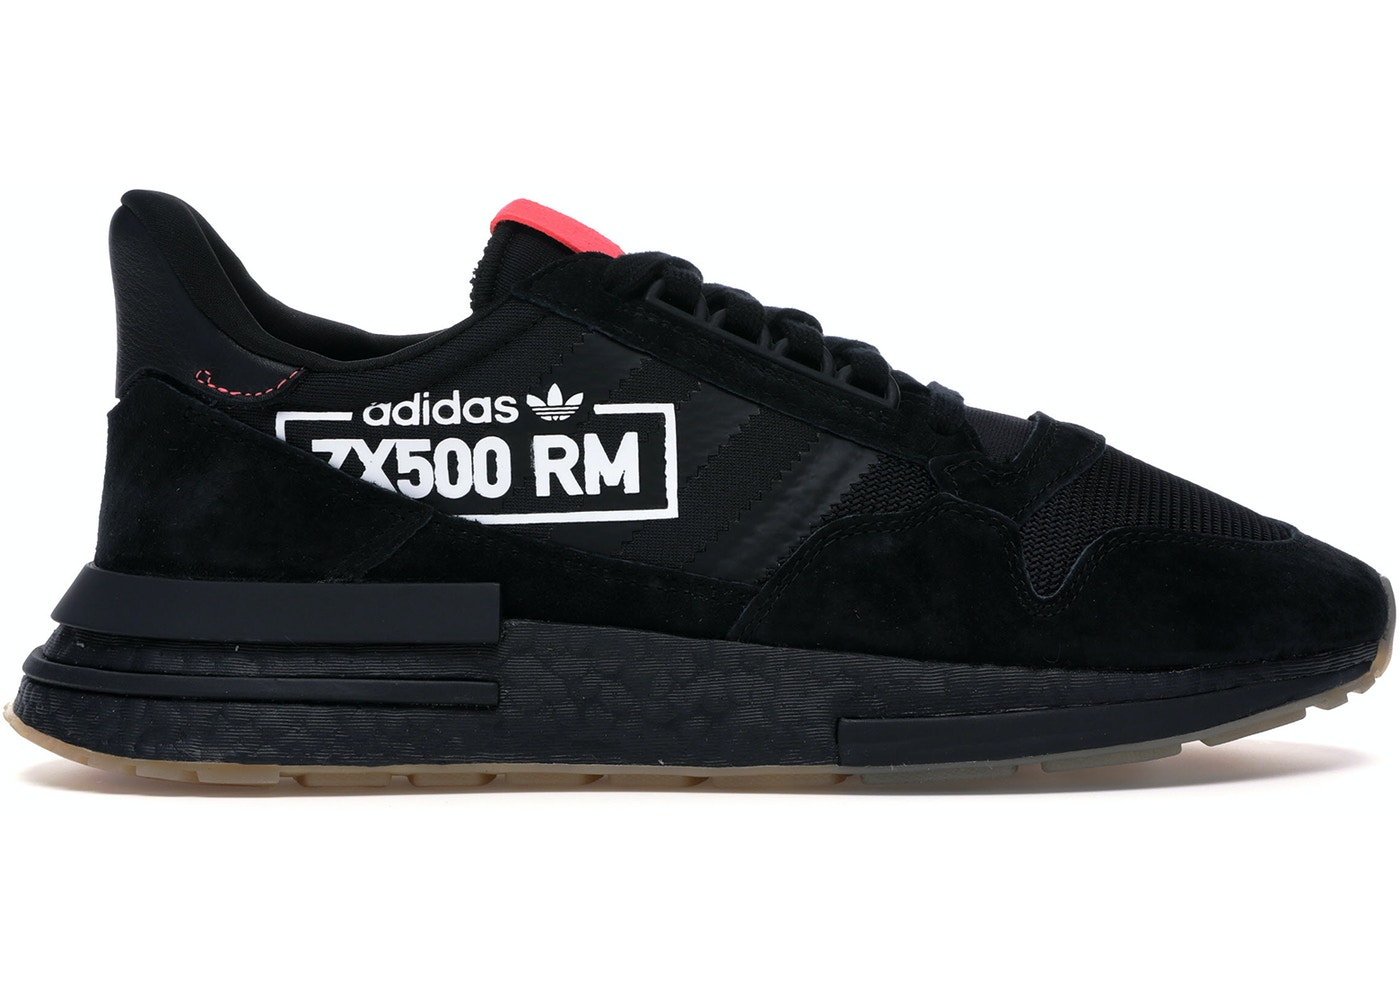 official photos bf803 26ccd adidas ZX500 RM Alphatype - BB7443